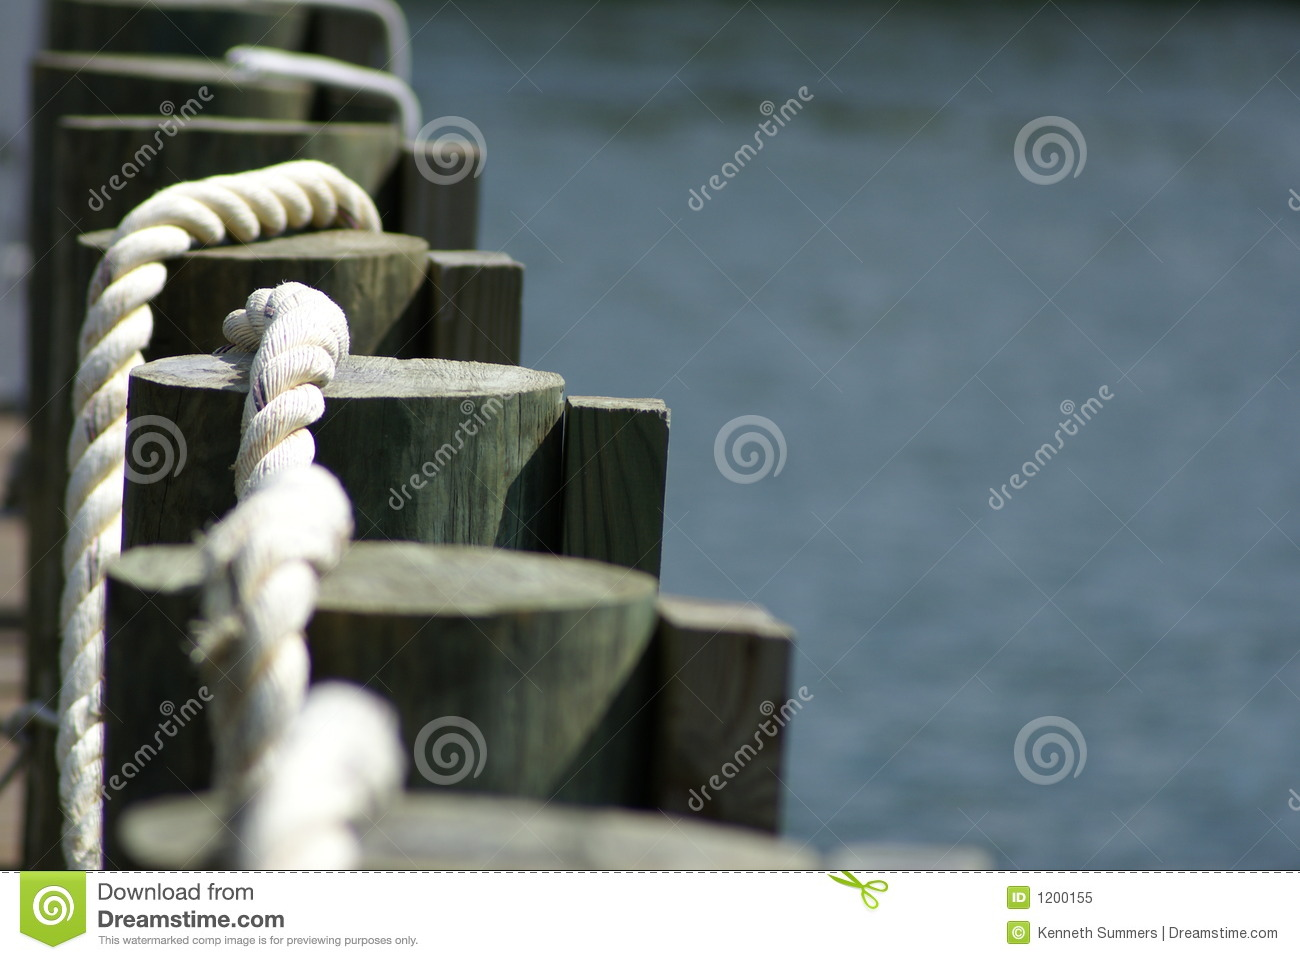 Dock and rope